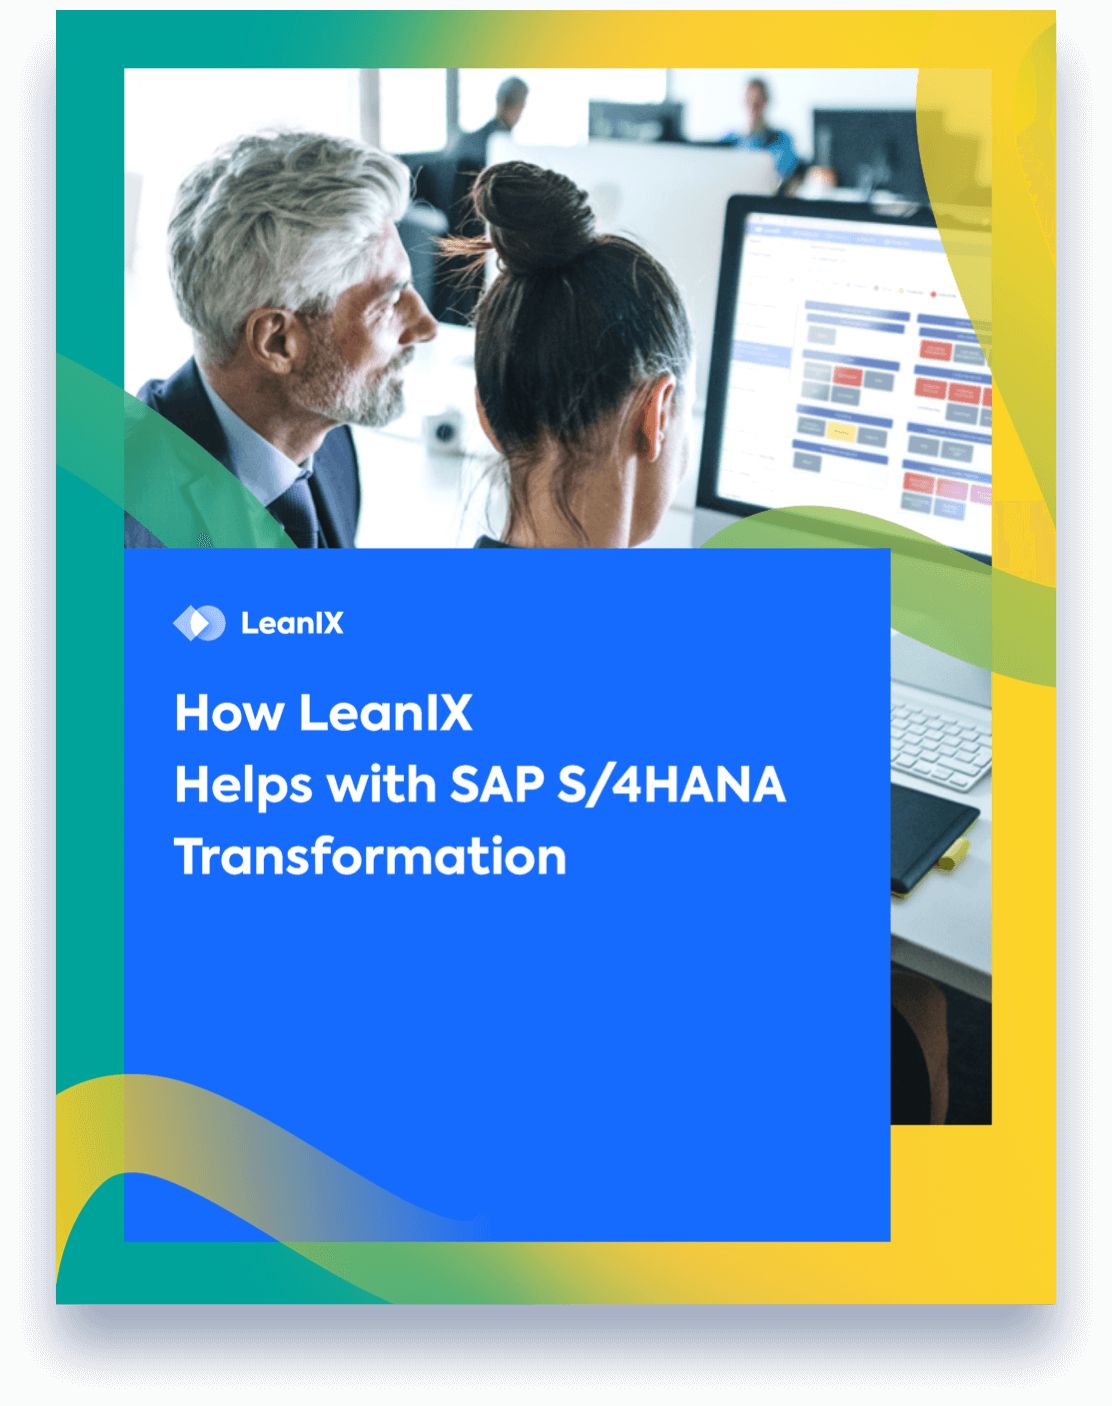 How LeanIX Helps with SAP S/4HANA Migration